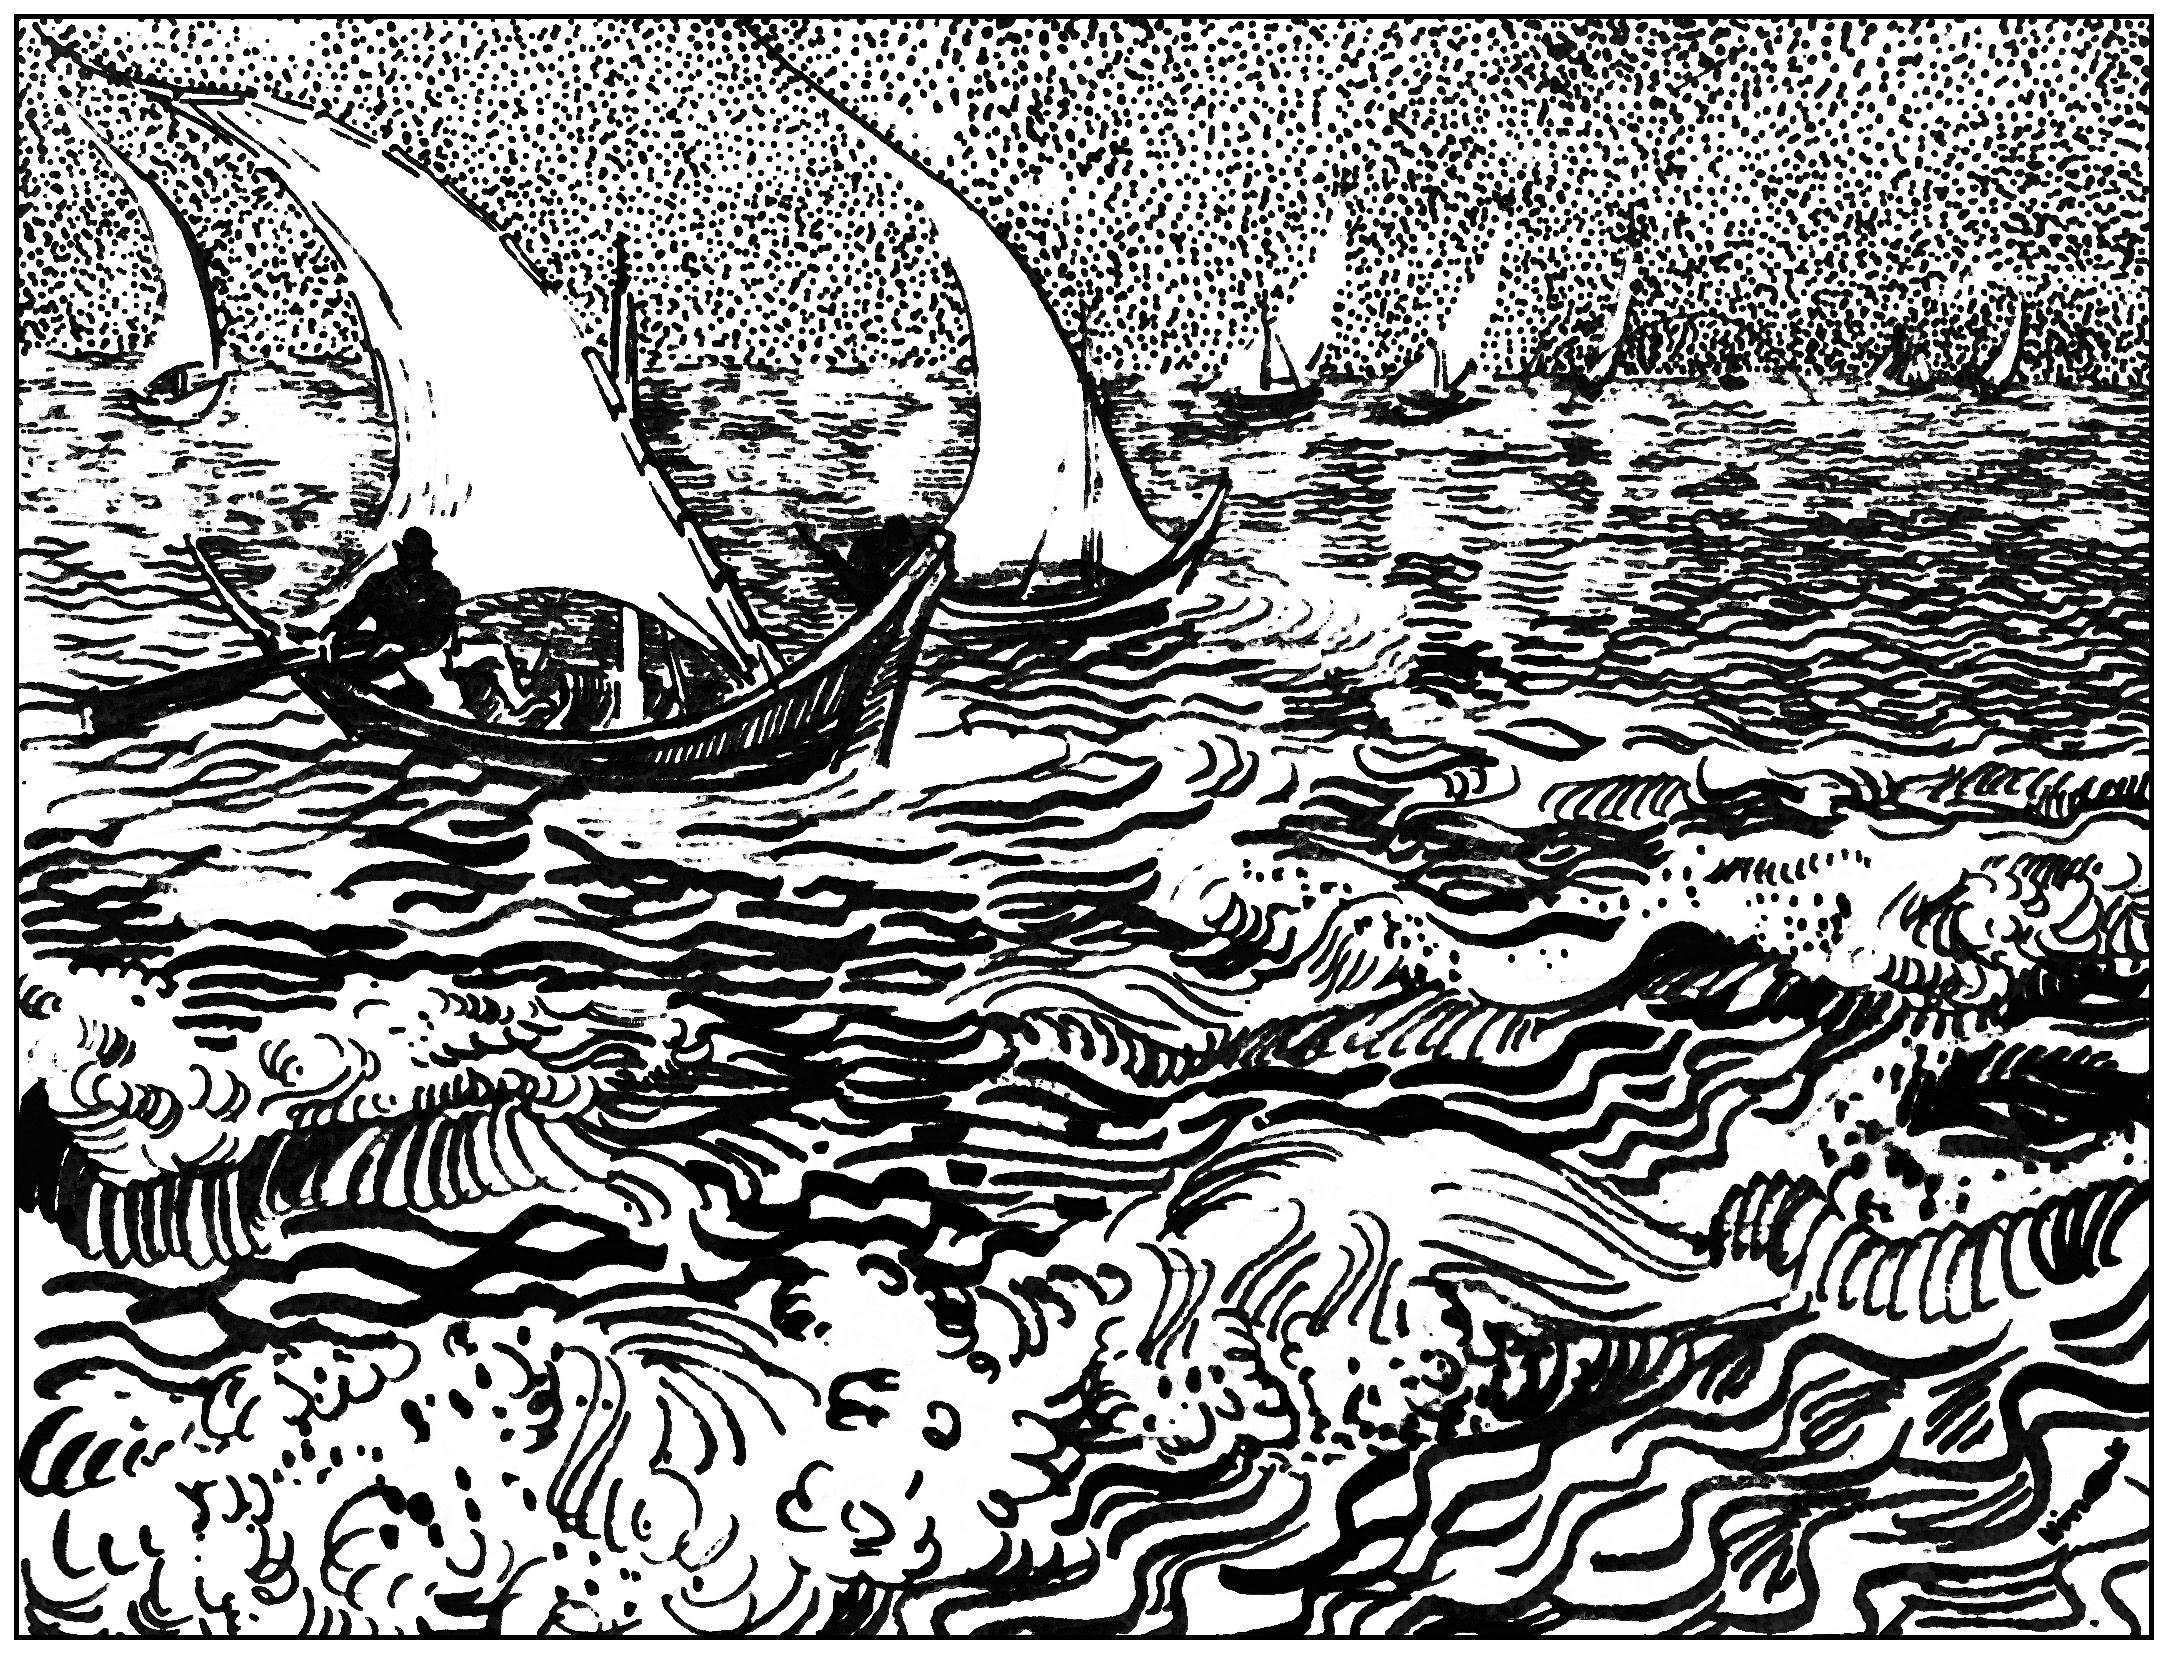 Coloring page for adult created from a Van Gogh drawing : Saintes ...